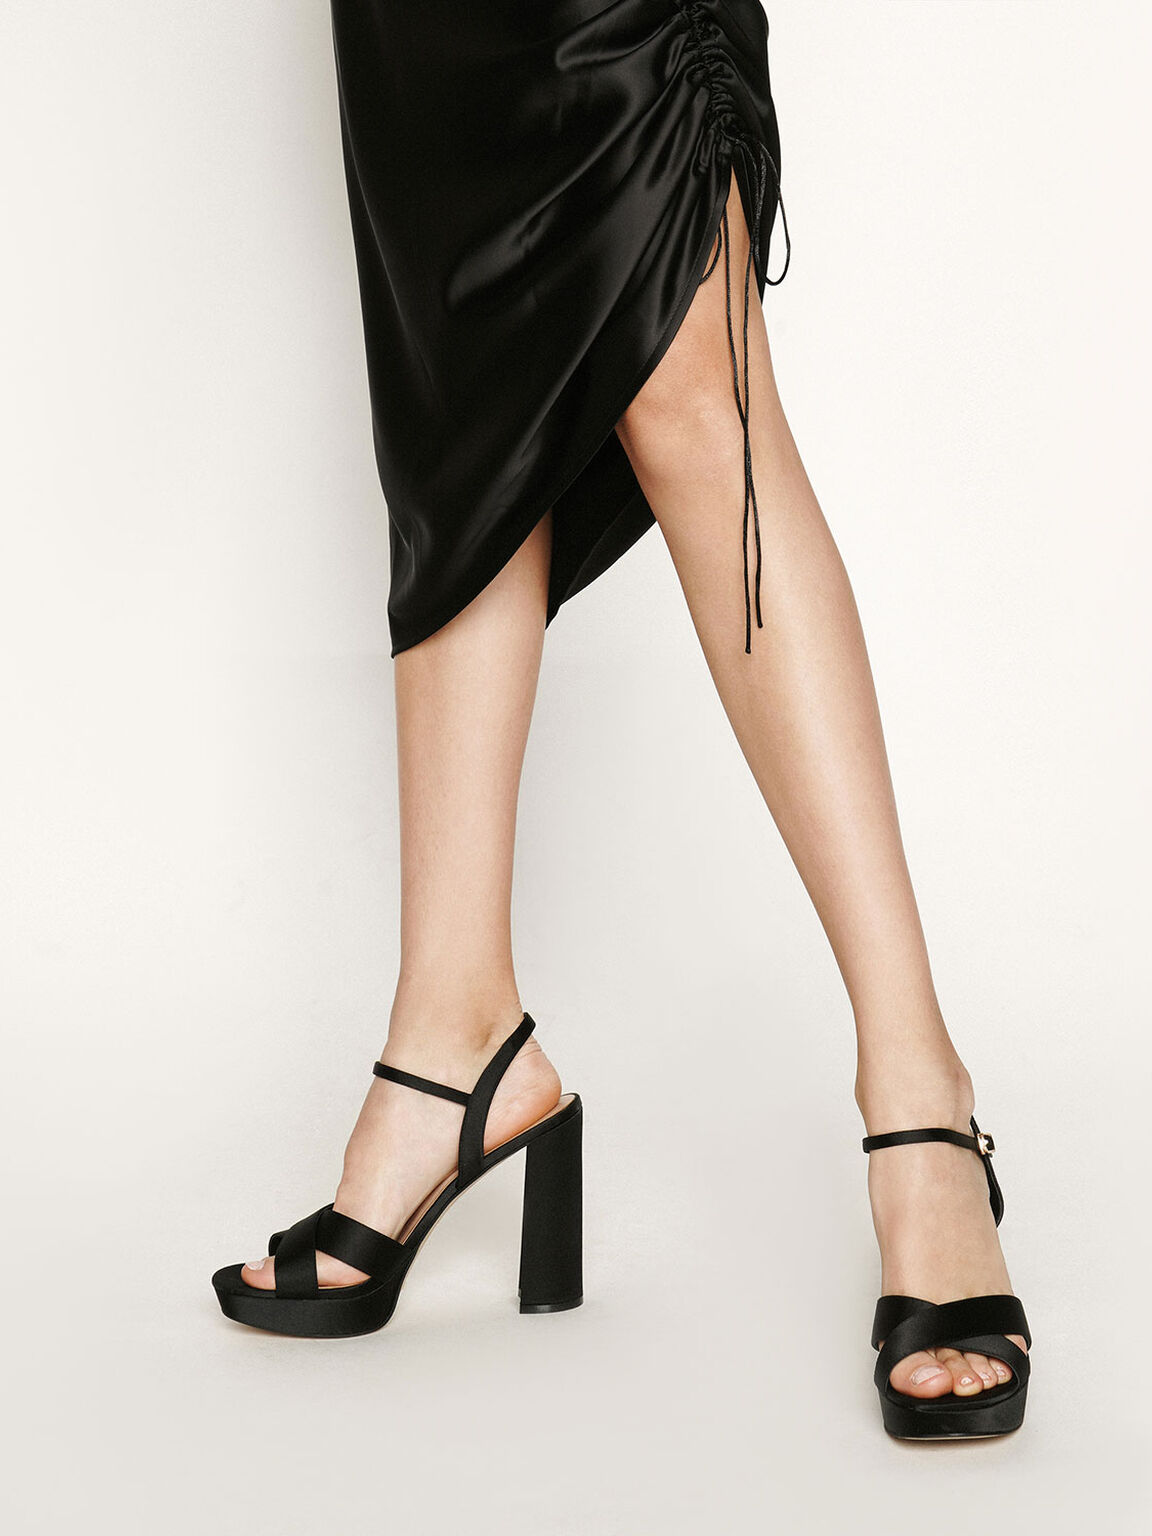 Satin Platform Heels, Black, hi-res